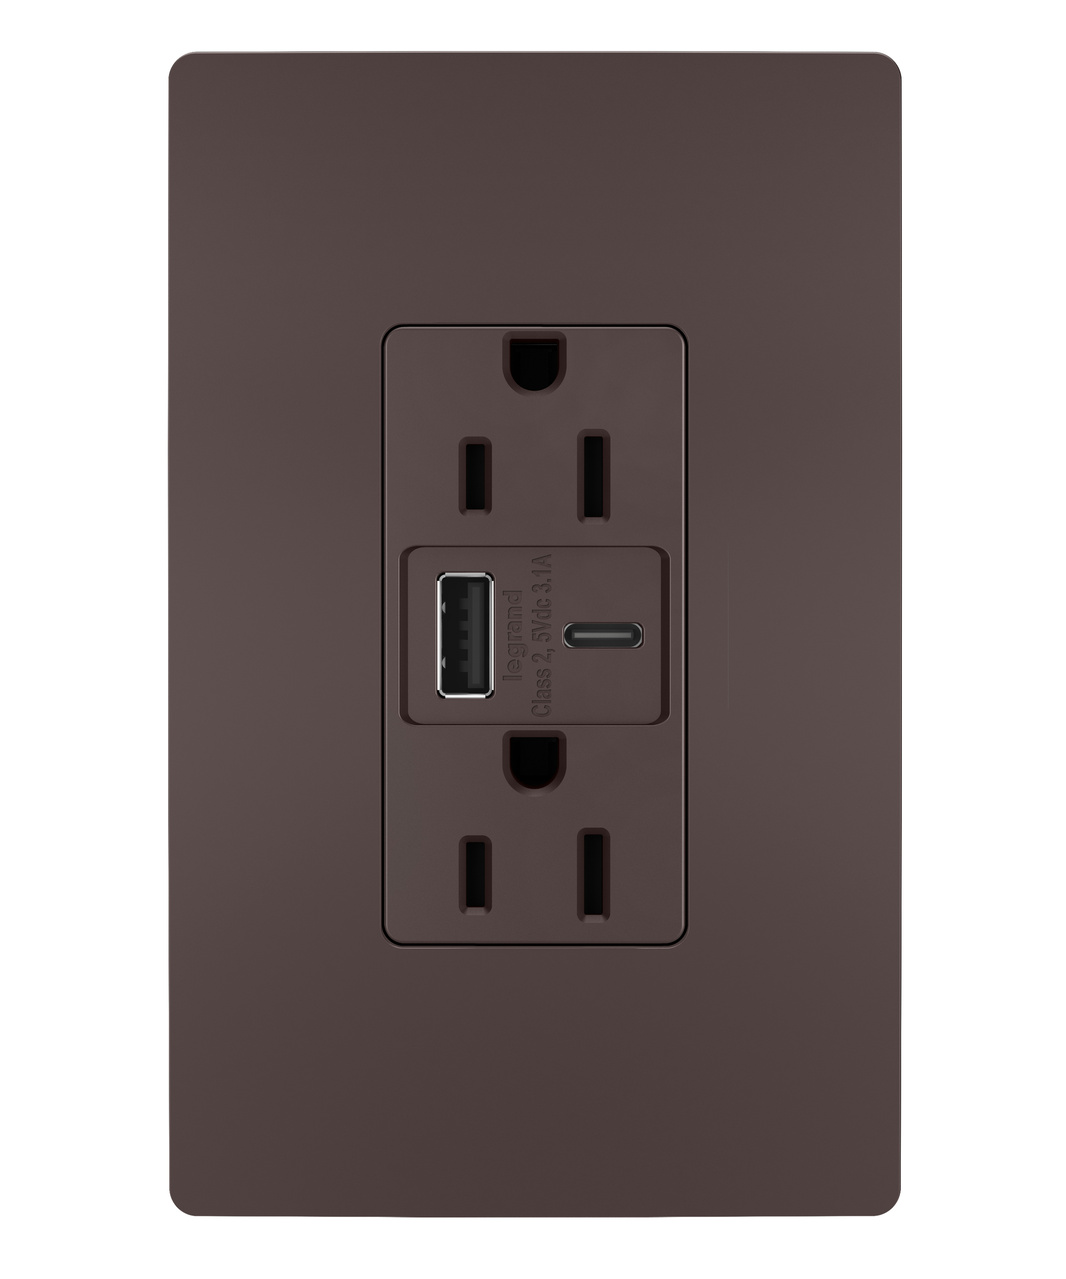 Hybrid Type A/C USB Chargers with Duplex 15A Tamper-Resistant Outlet, Dark Bronze